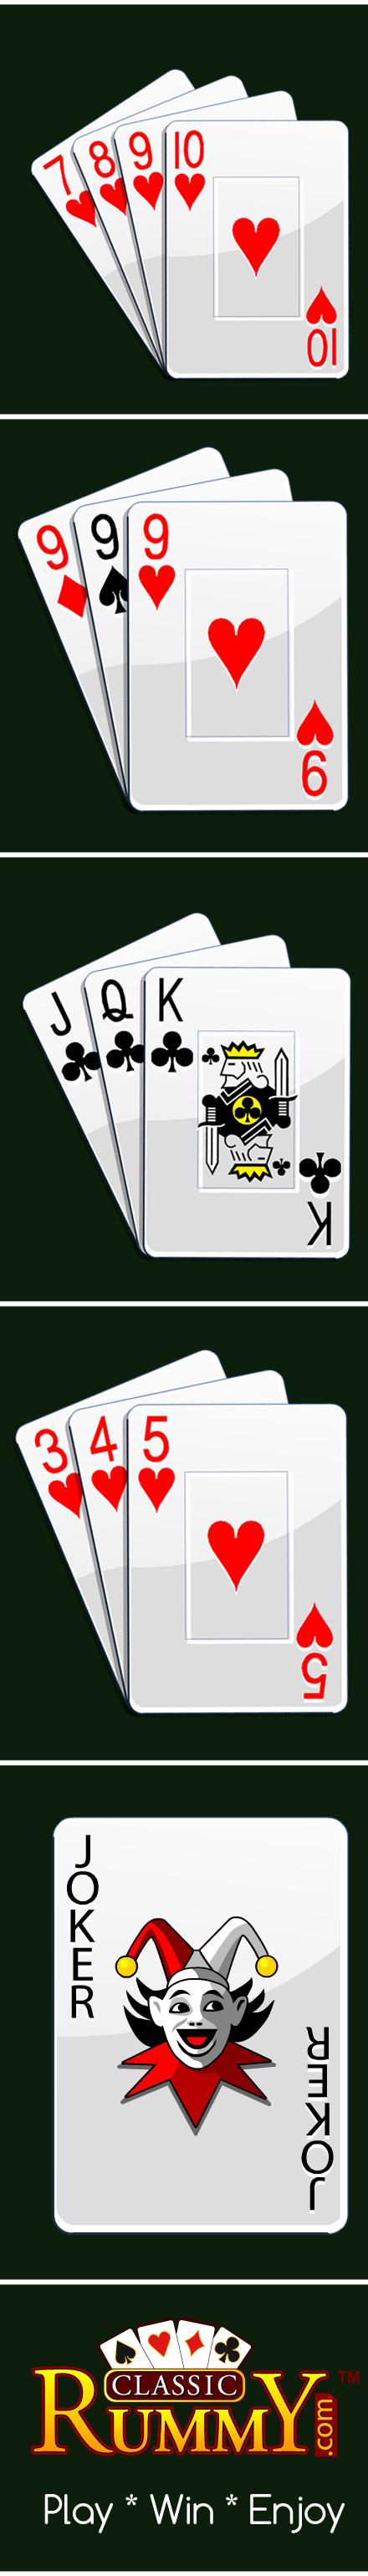 Check for rules and regulations of the rummy games online